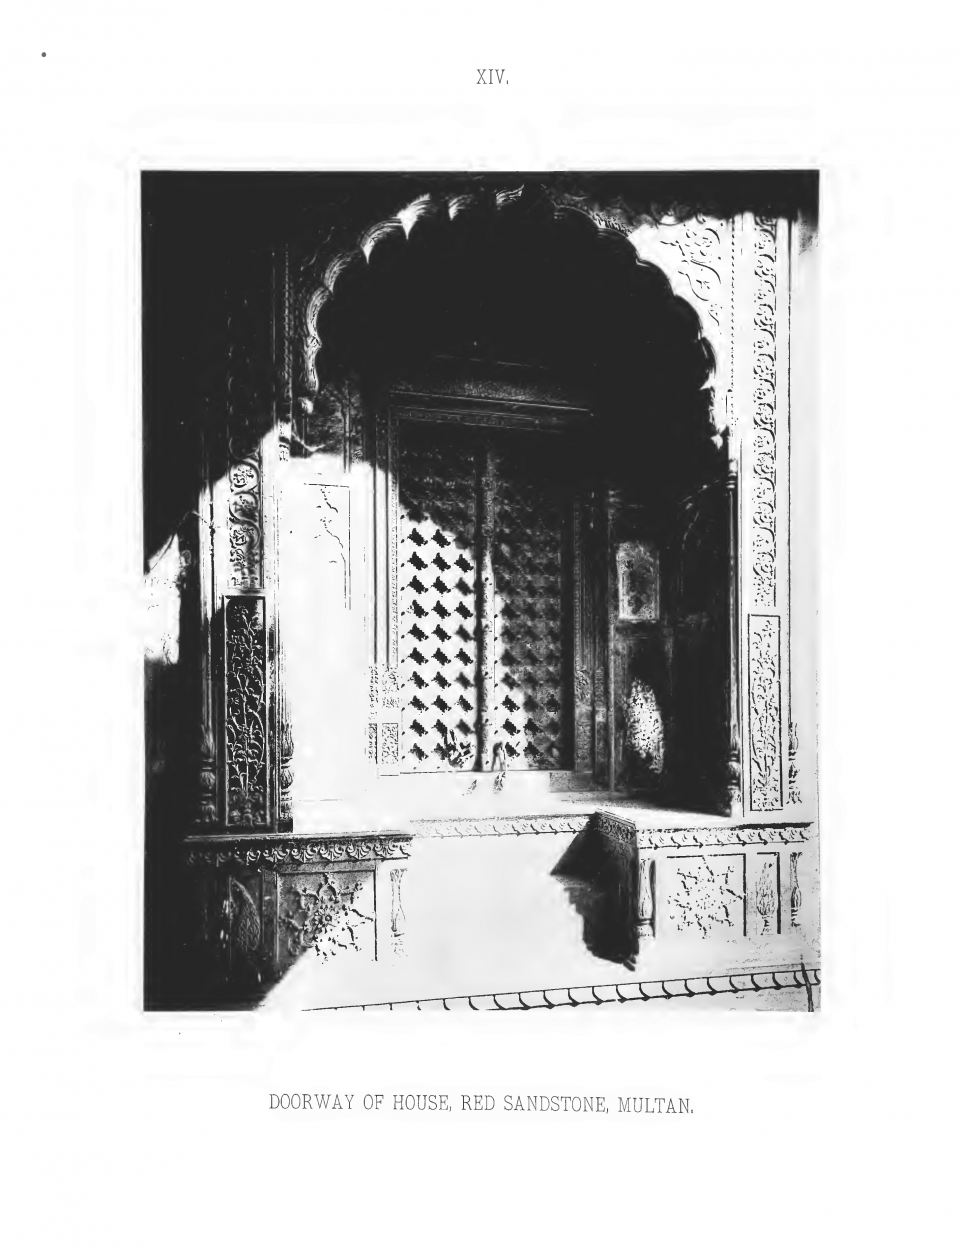 PLATE XIV. DOORWAY OF HOUSE, RED SANDSTONE, MULTAN.